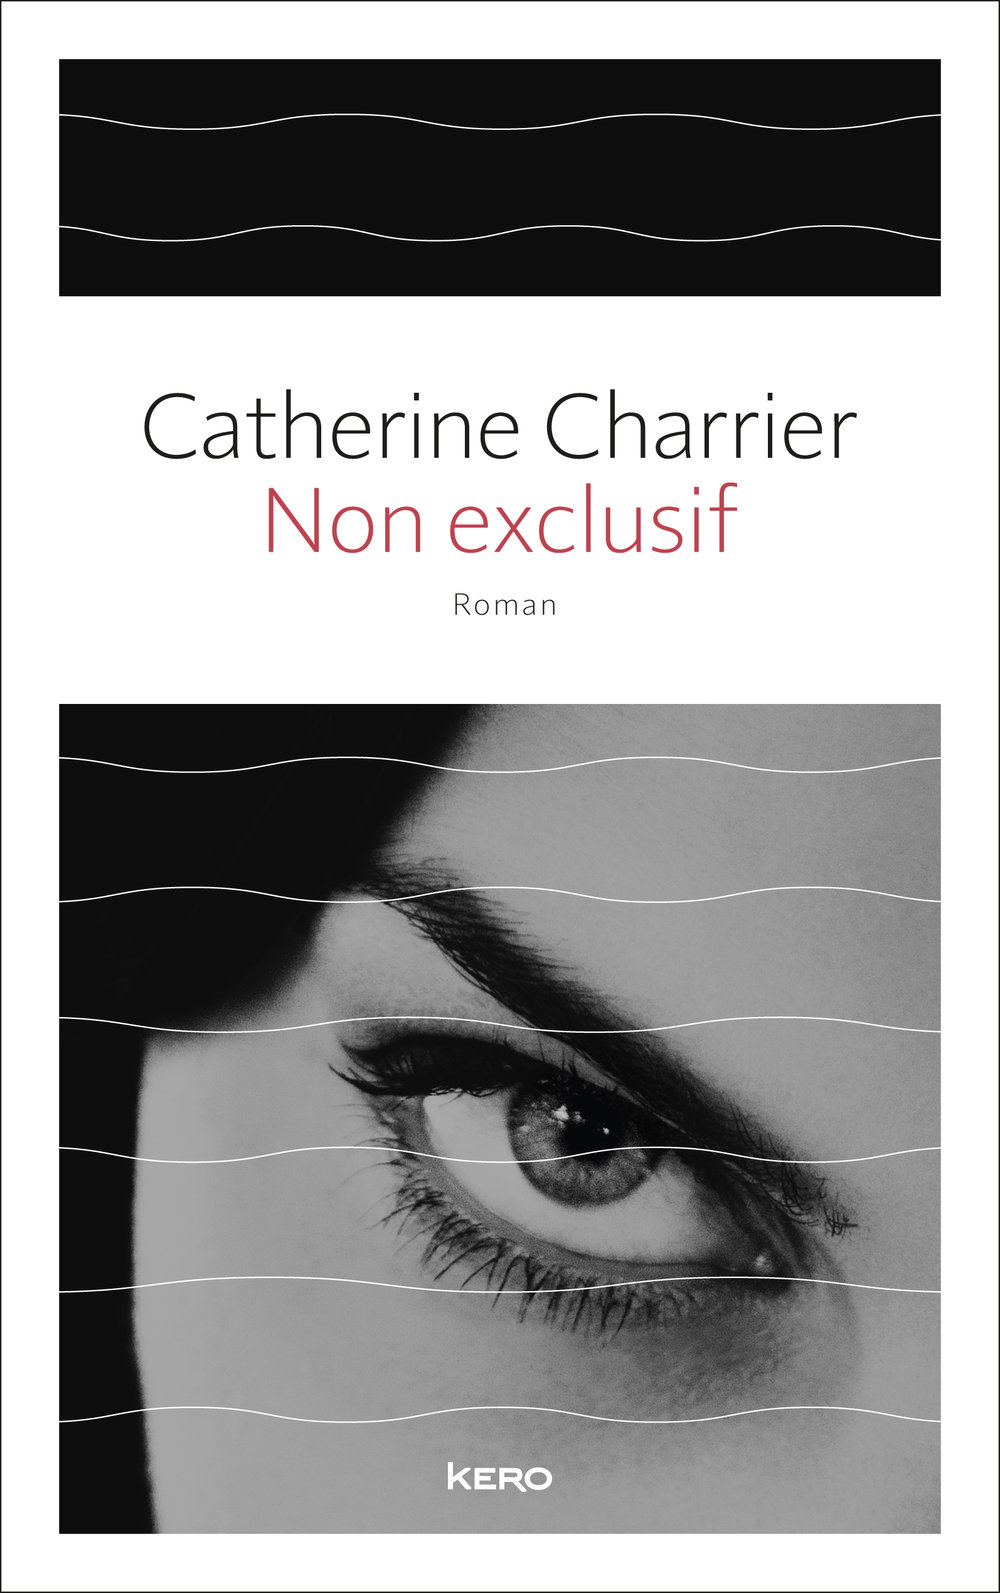 Catherine CharrierNon exclusifÉditions Kéro - Creative Direction, Bookline Concept, Cover Design.Client: Éditions Kéro